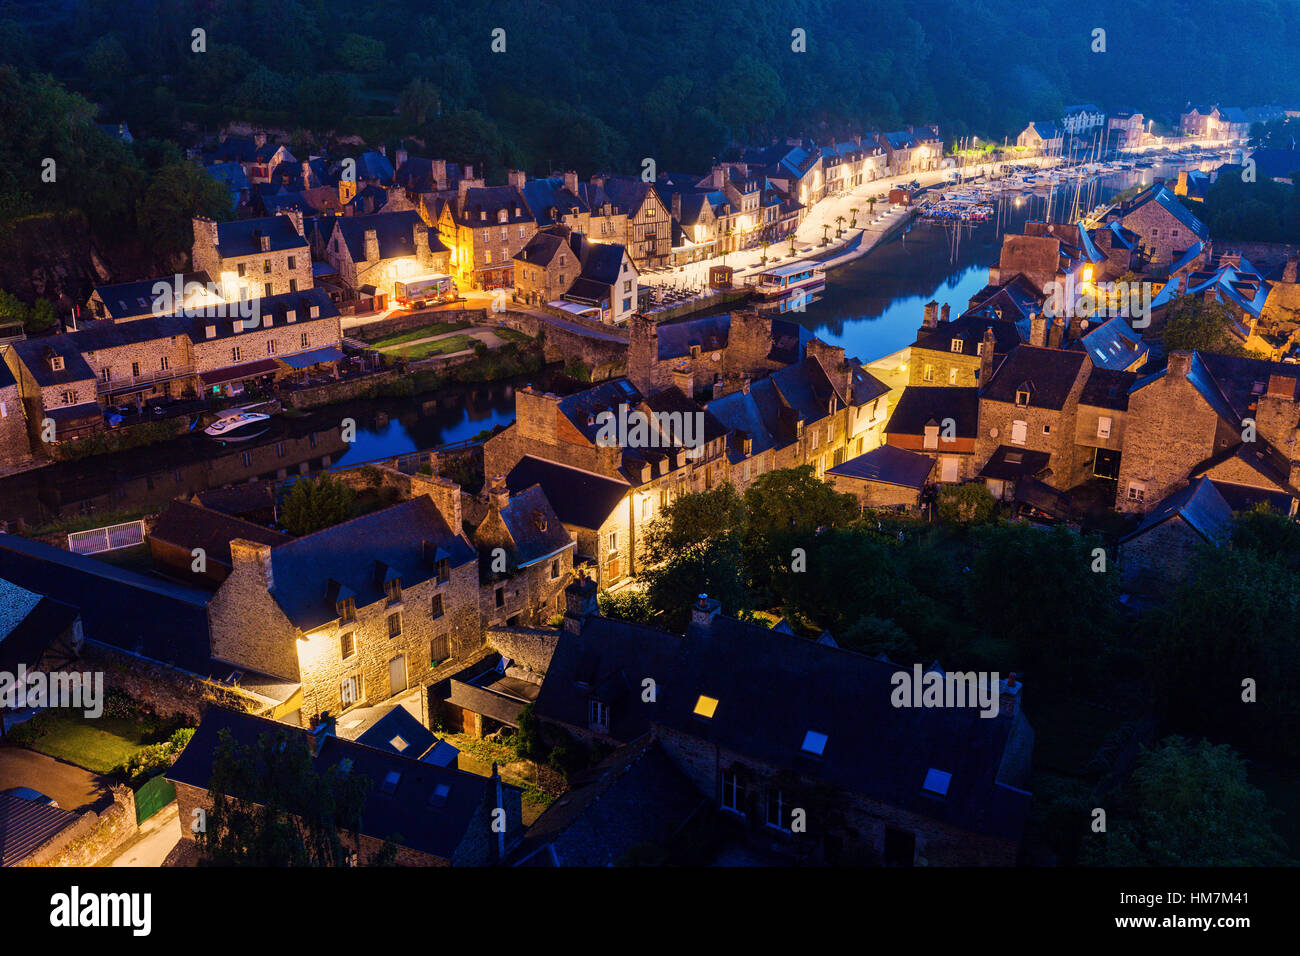 France, Brittany, Dinan, Cityscape with river at dusk - Stock Image